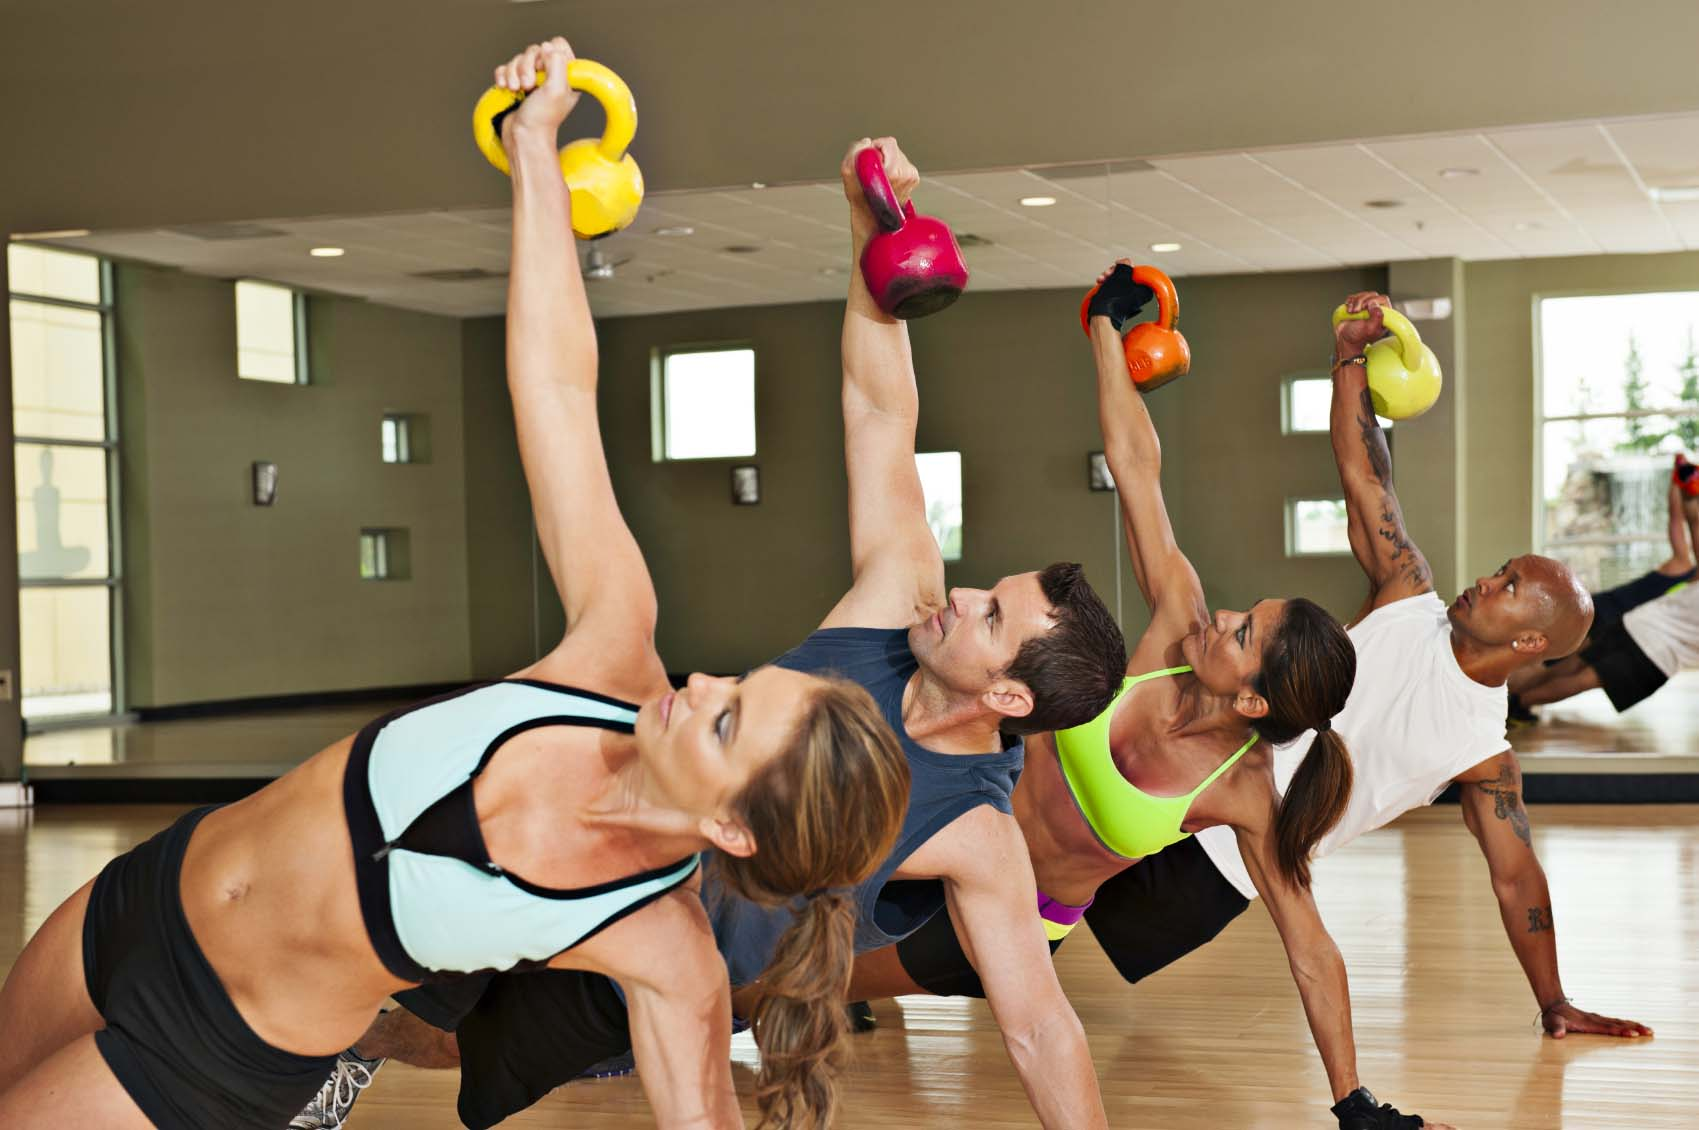 http://way4you.com.ua/images/upload/Kettlebell-Clas%20way4you.jpg